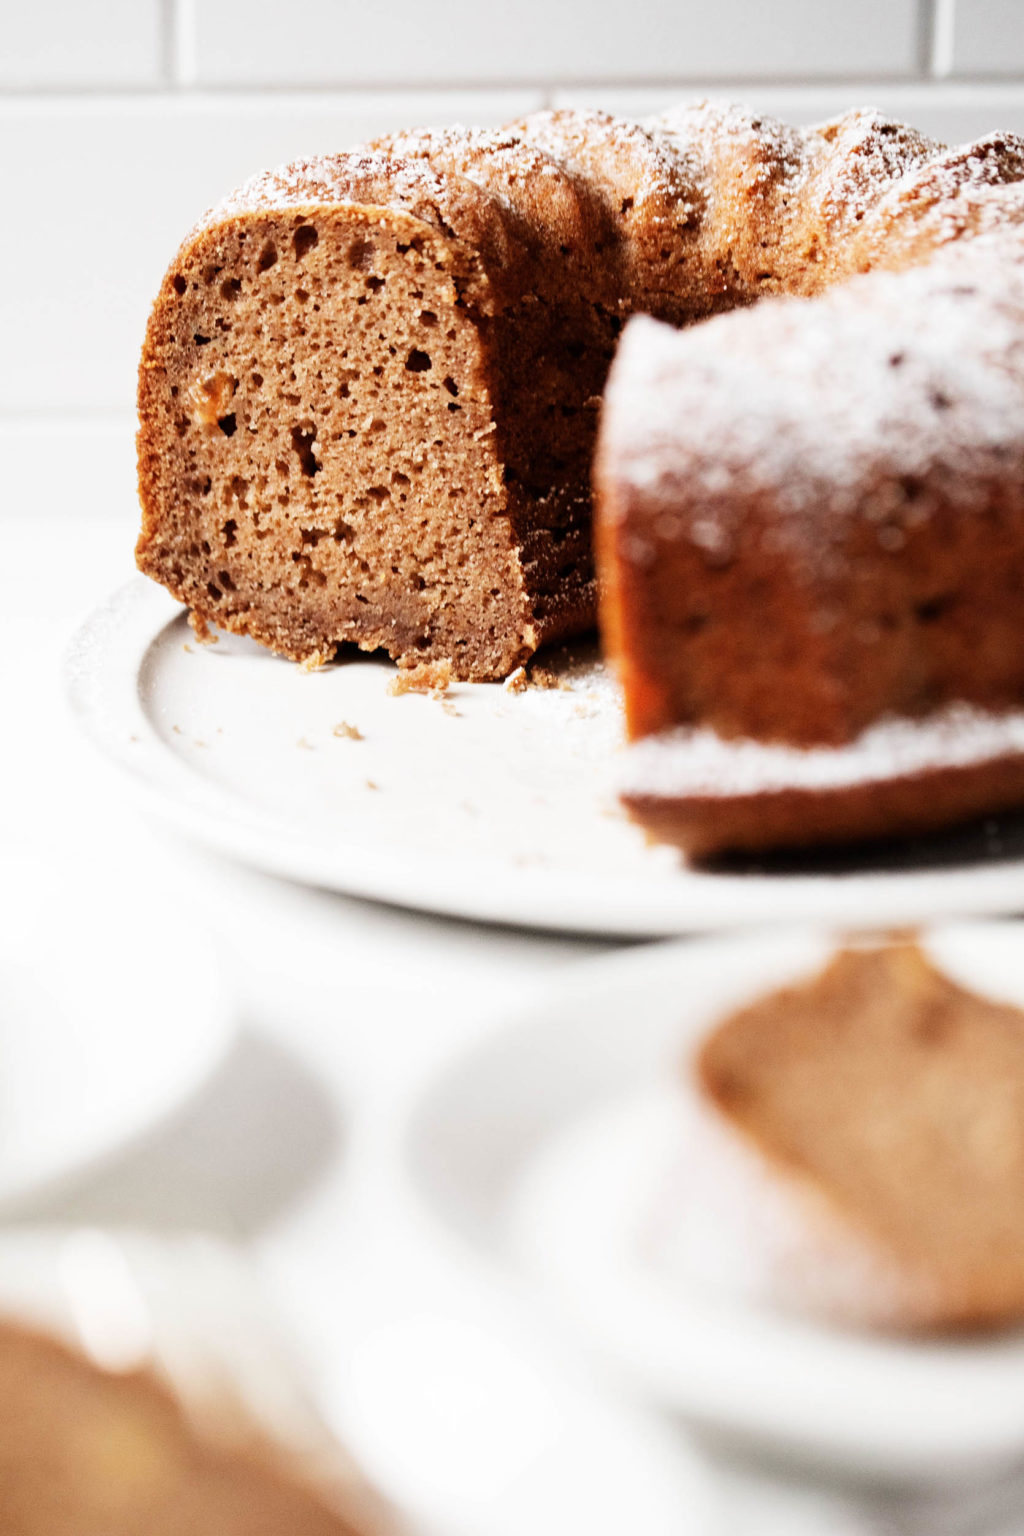 A large, white plate has been topped with a round applesauce spice bundt cake. A few slices of the cake peek out in the foreground.